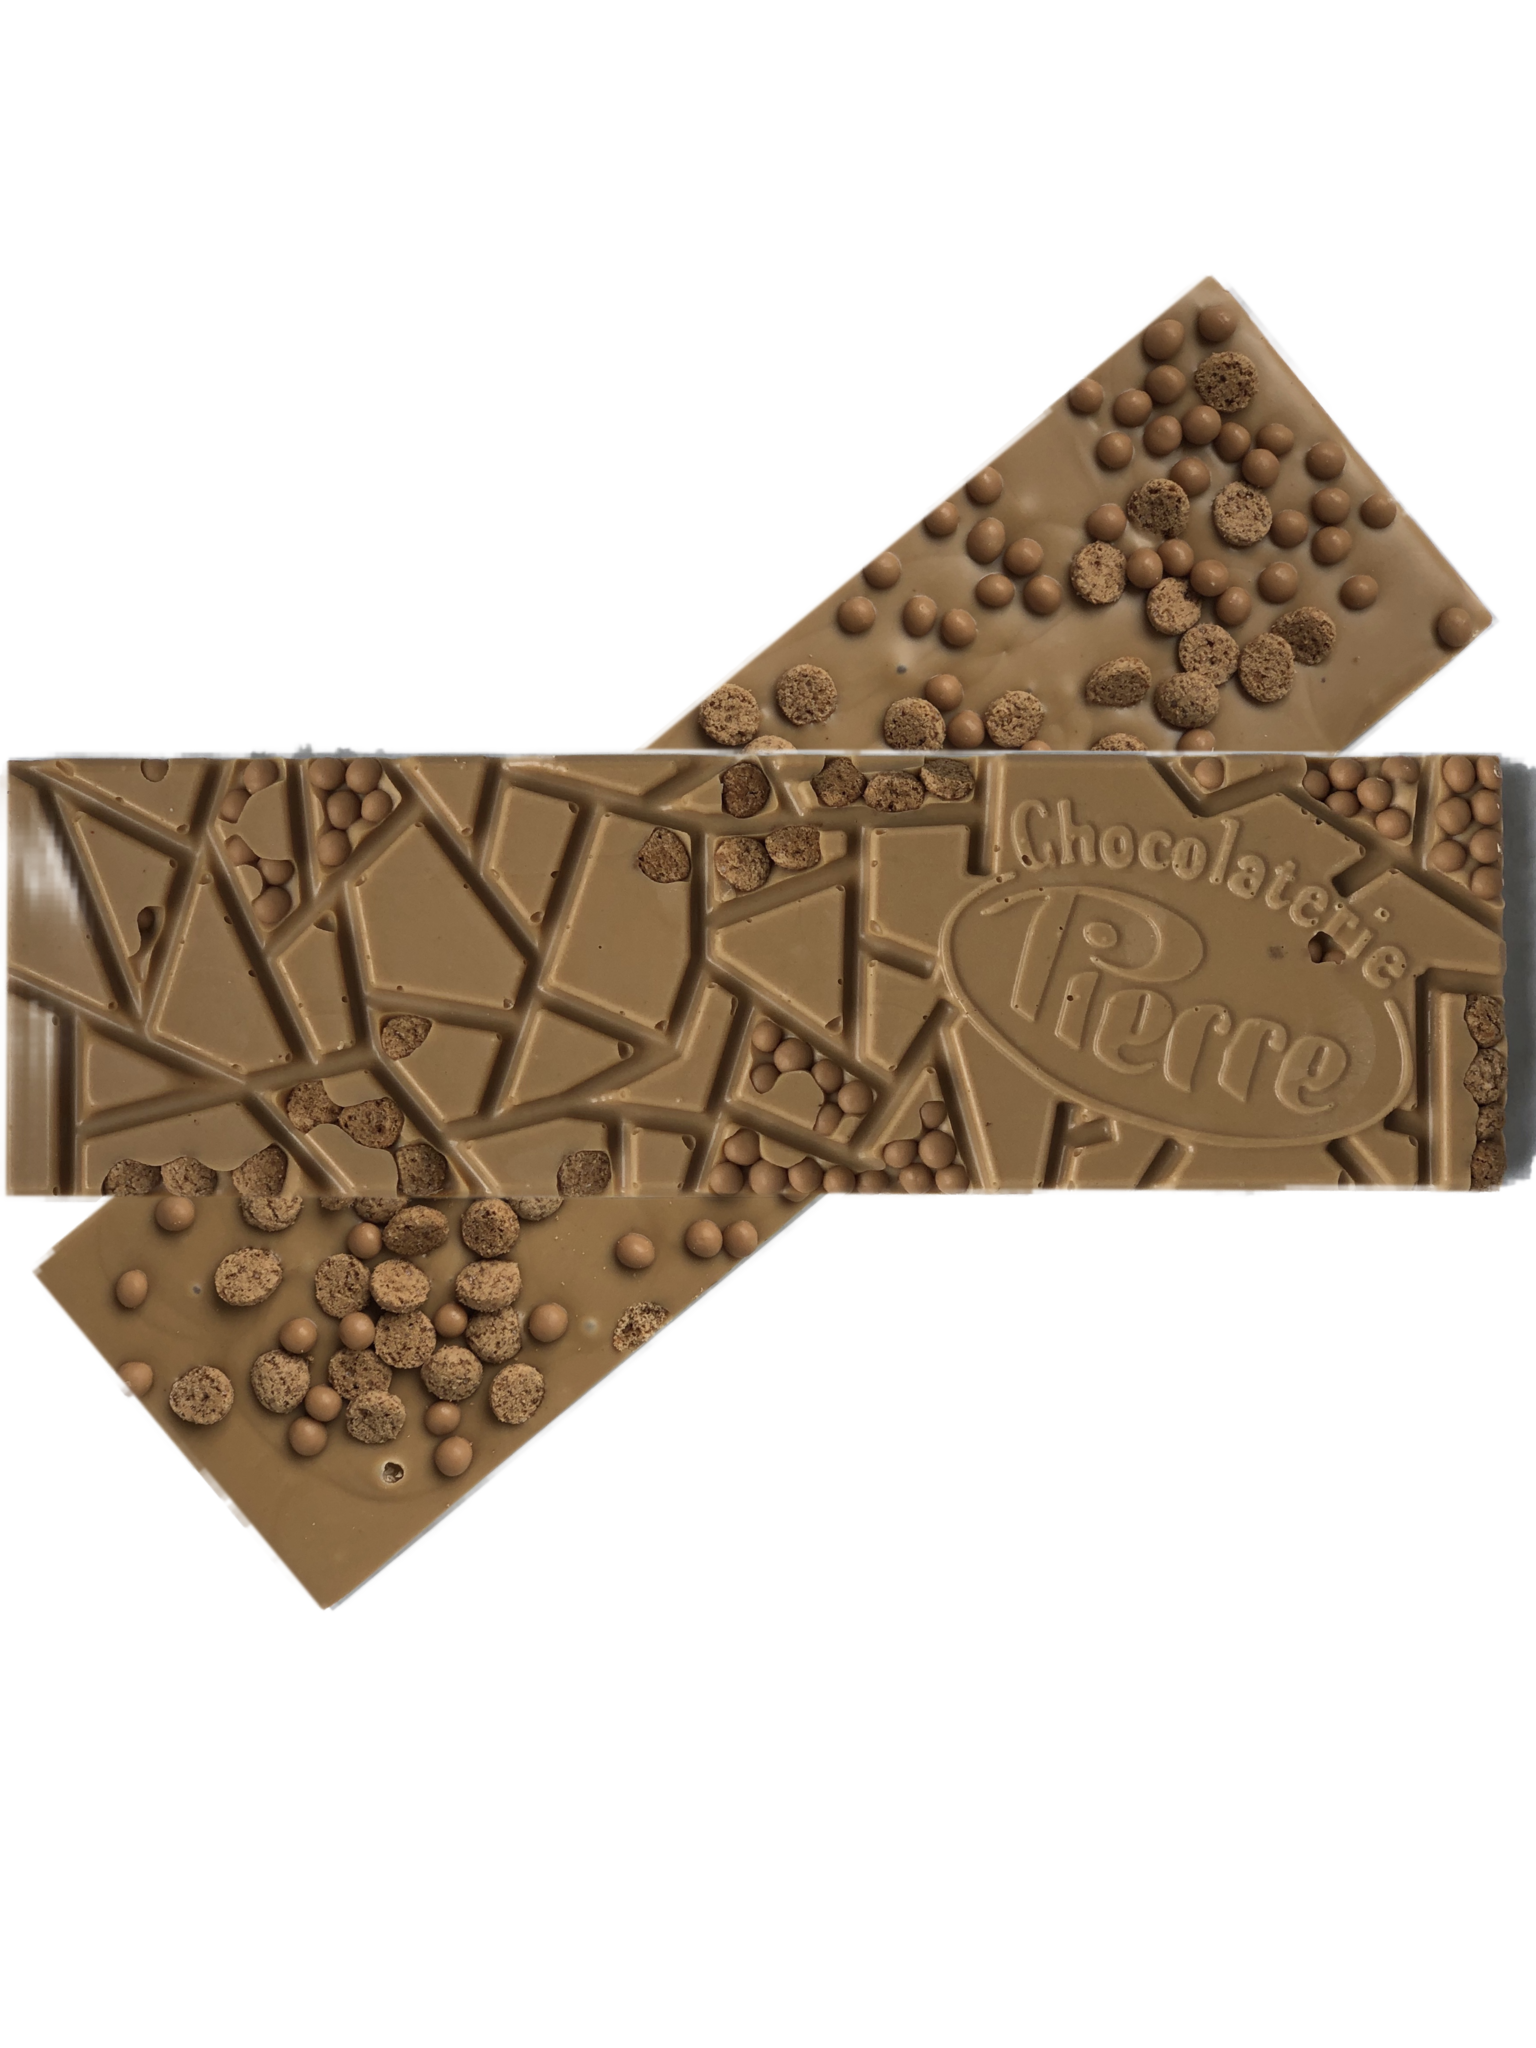 Pierre chocoladereep Stout Speculaas